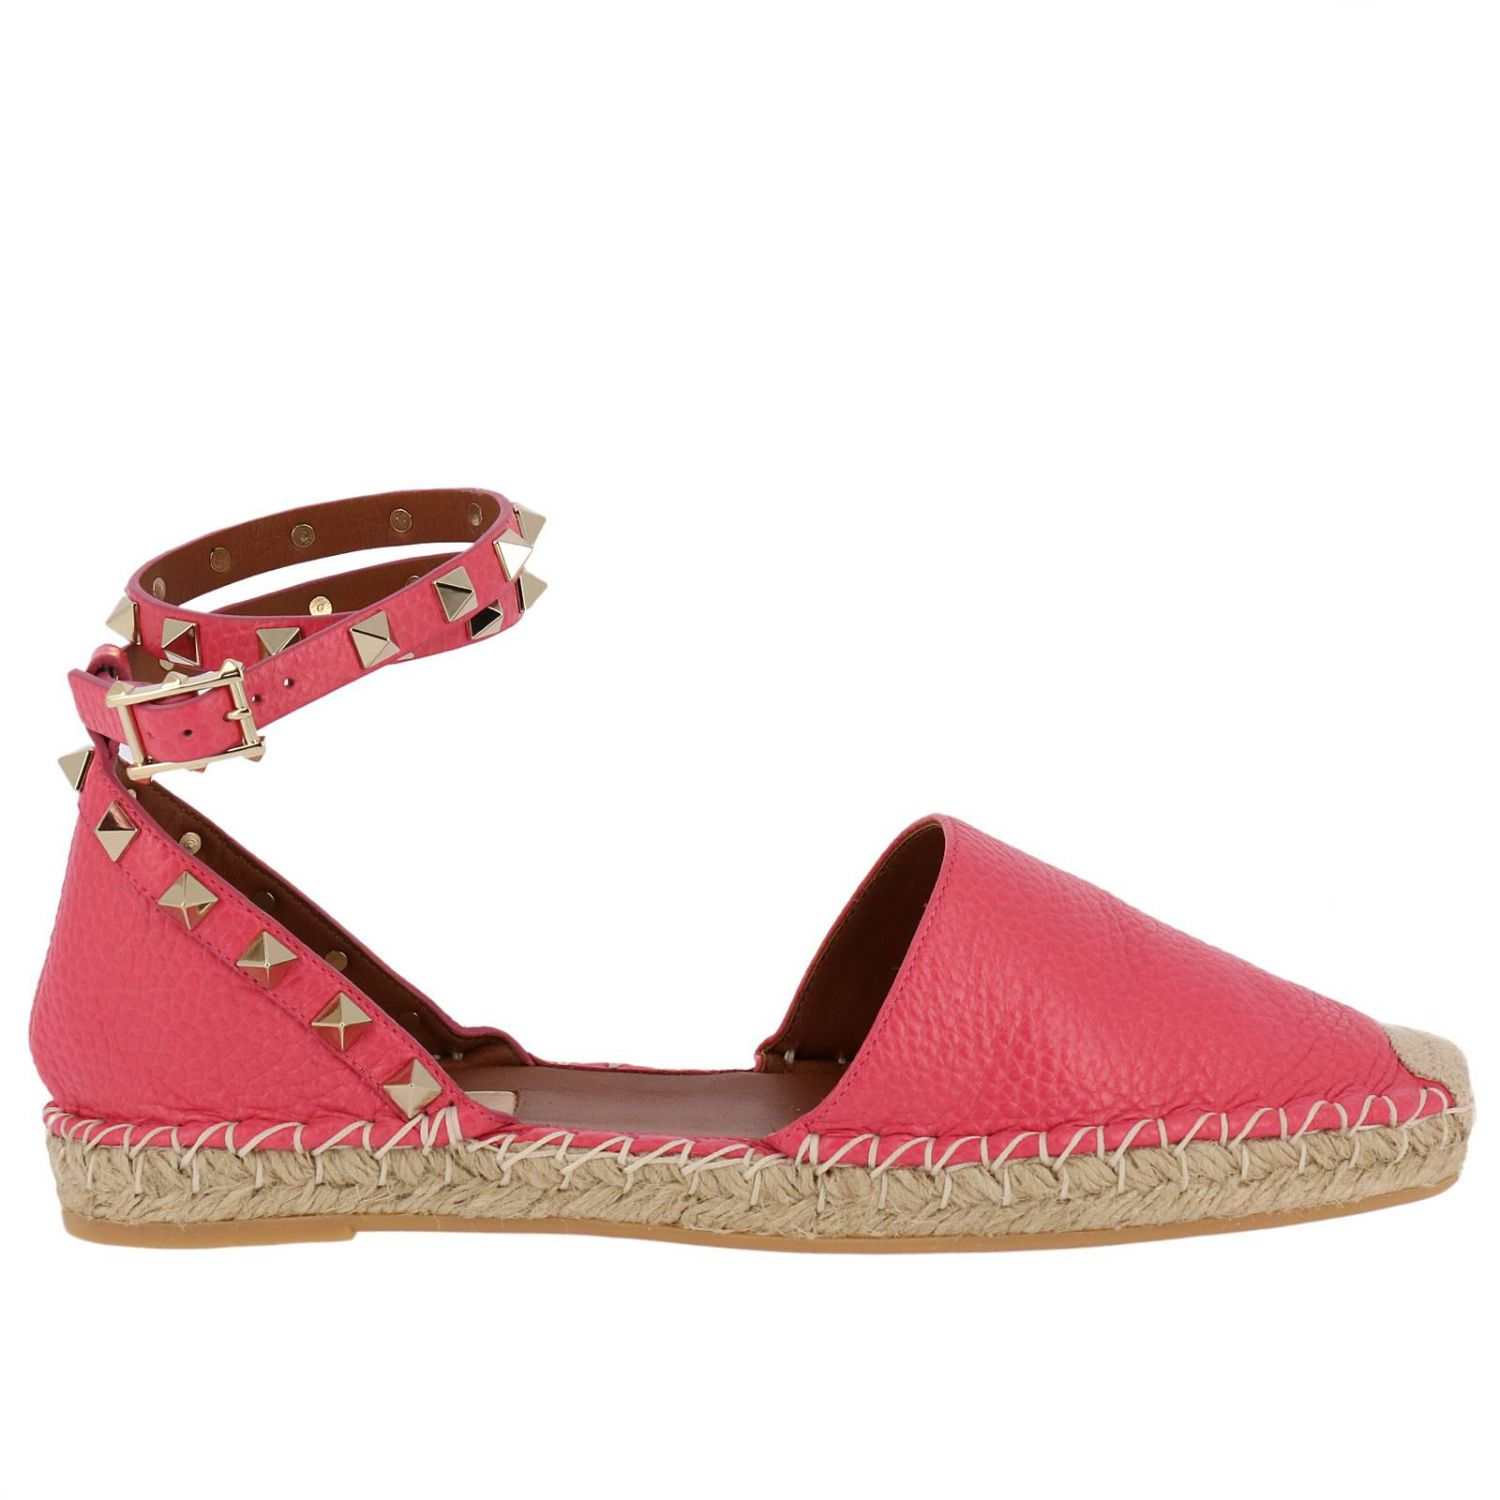 Flat Shoes Valentino Rockstud Spike Espadrilles In Hammered Leather With Metal Studs And Rope Sole 8286960